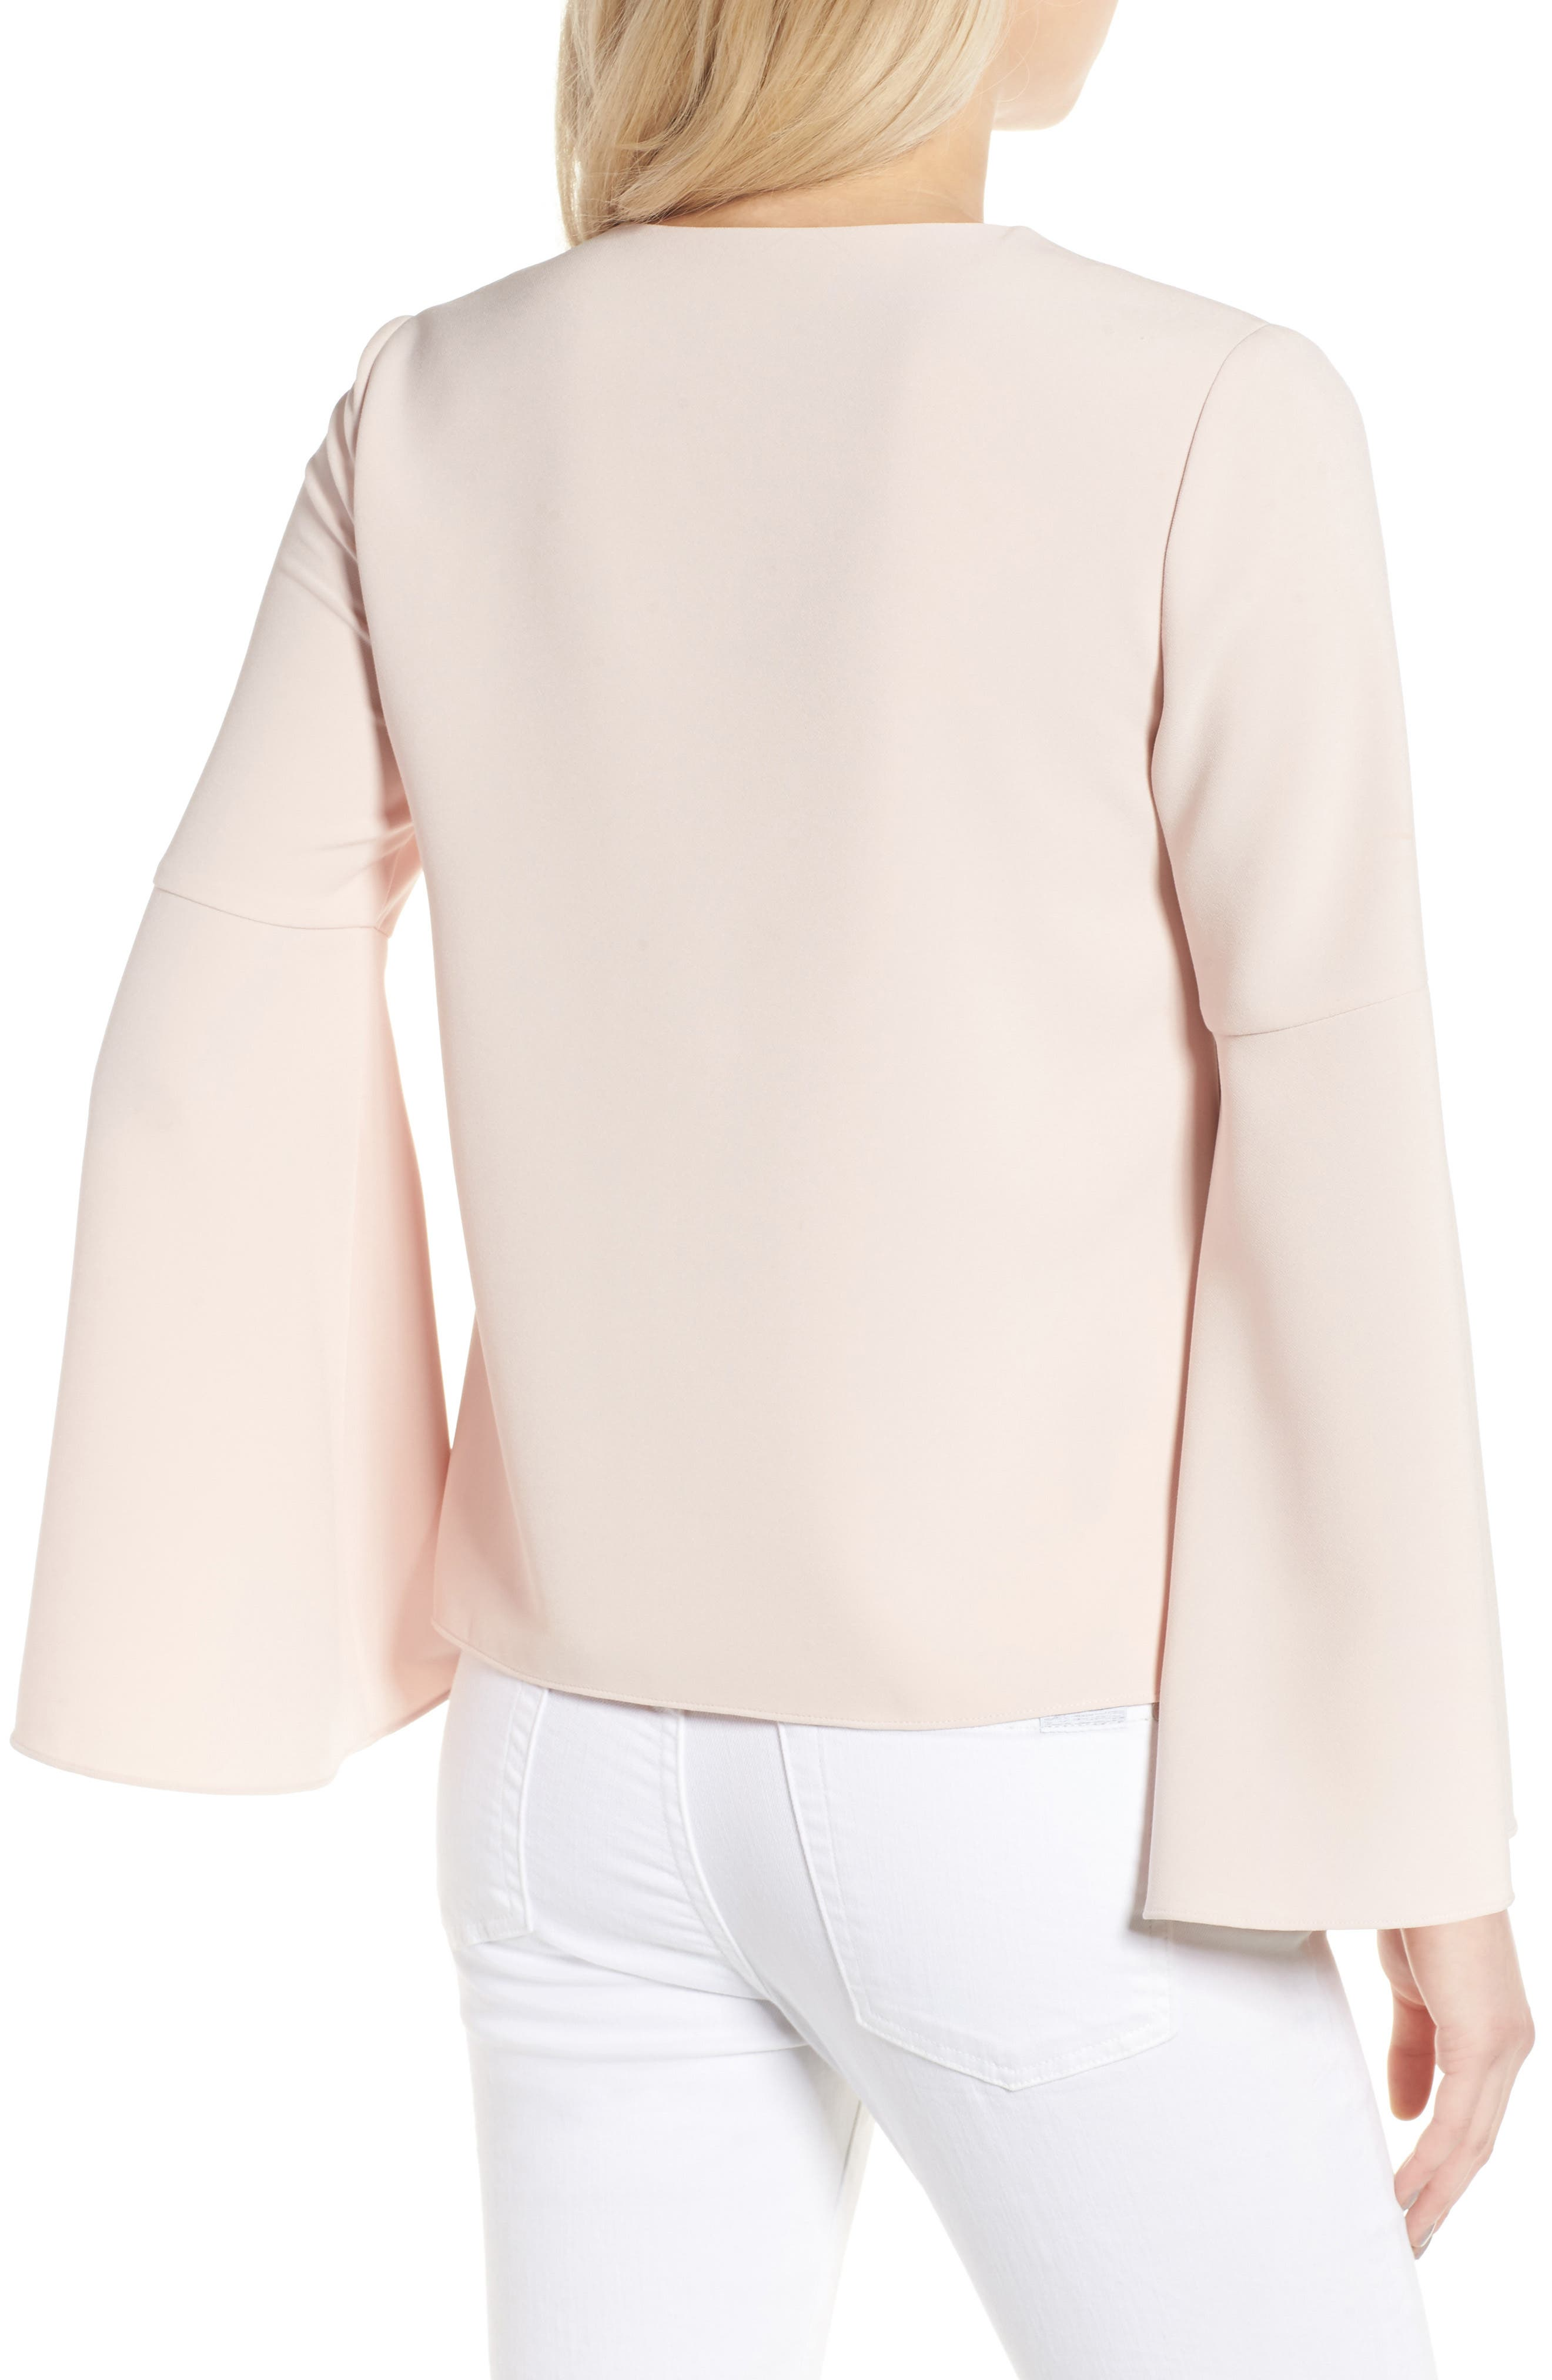 Marcela Bell Sleeve Top,                             Alternate thumbnail 2, color,                             Pale Pink